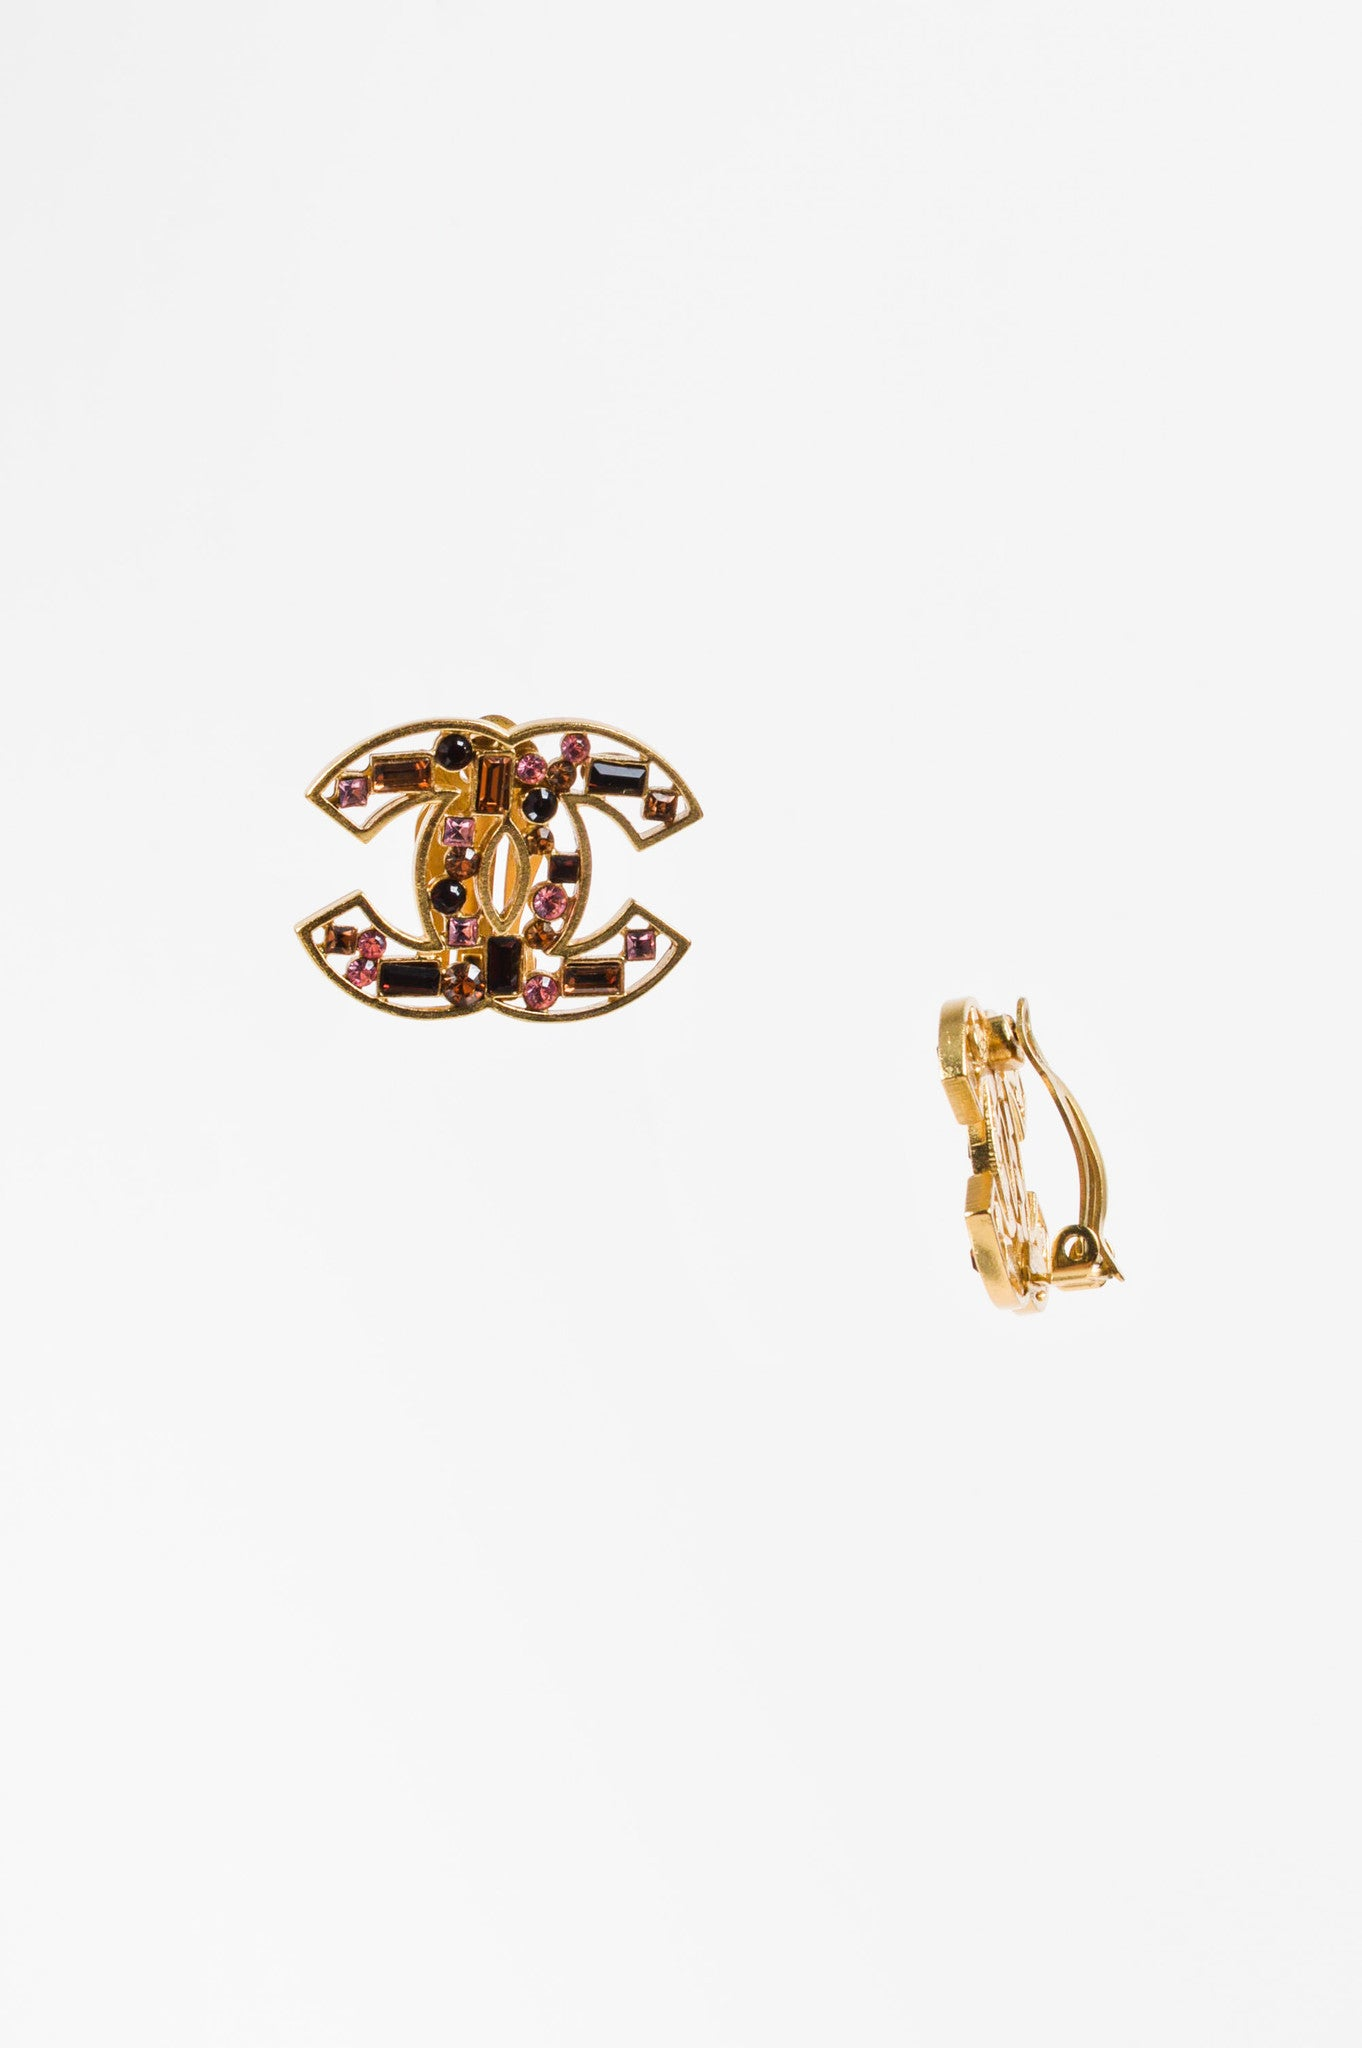 Chanel Gold Toned, Brown, and Pink Crystal Embellished 'CC' Clip On Earrings Sideview